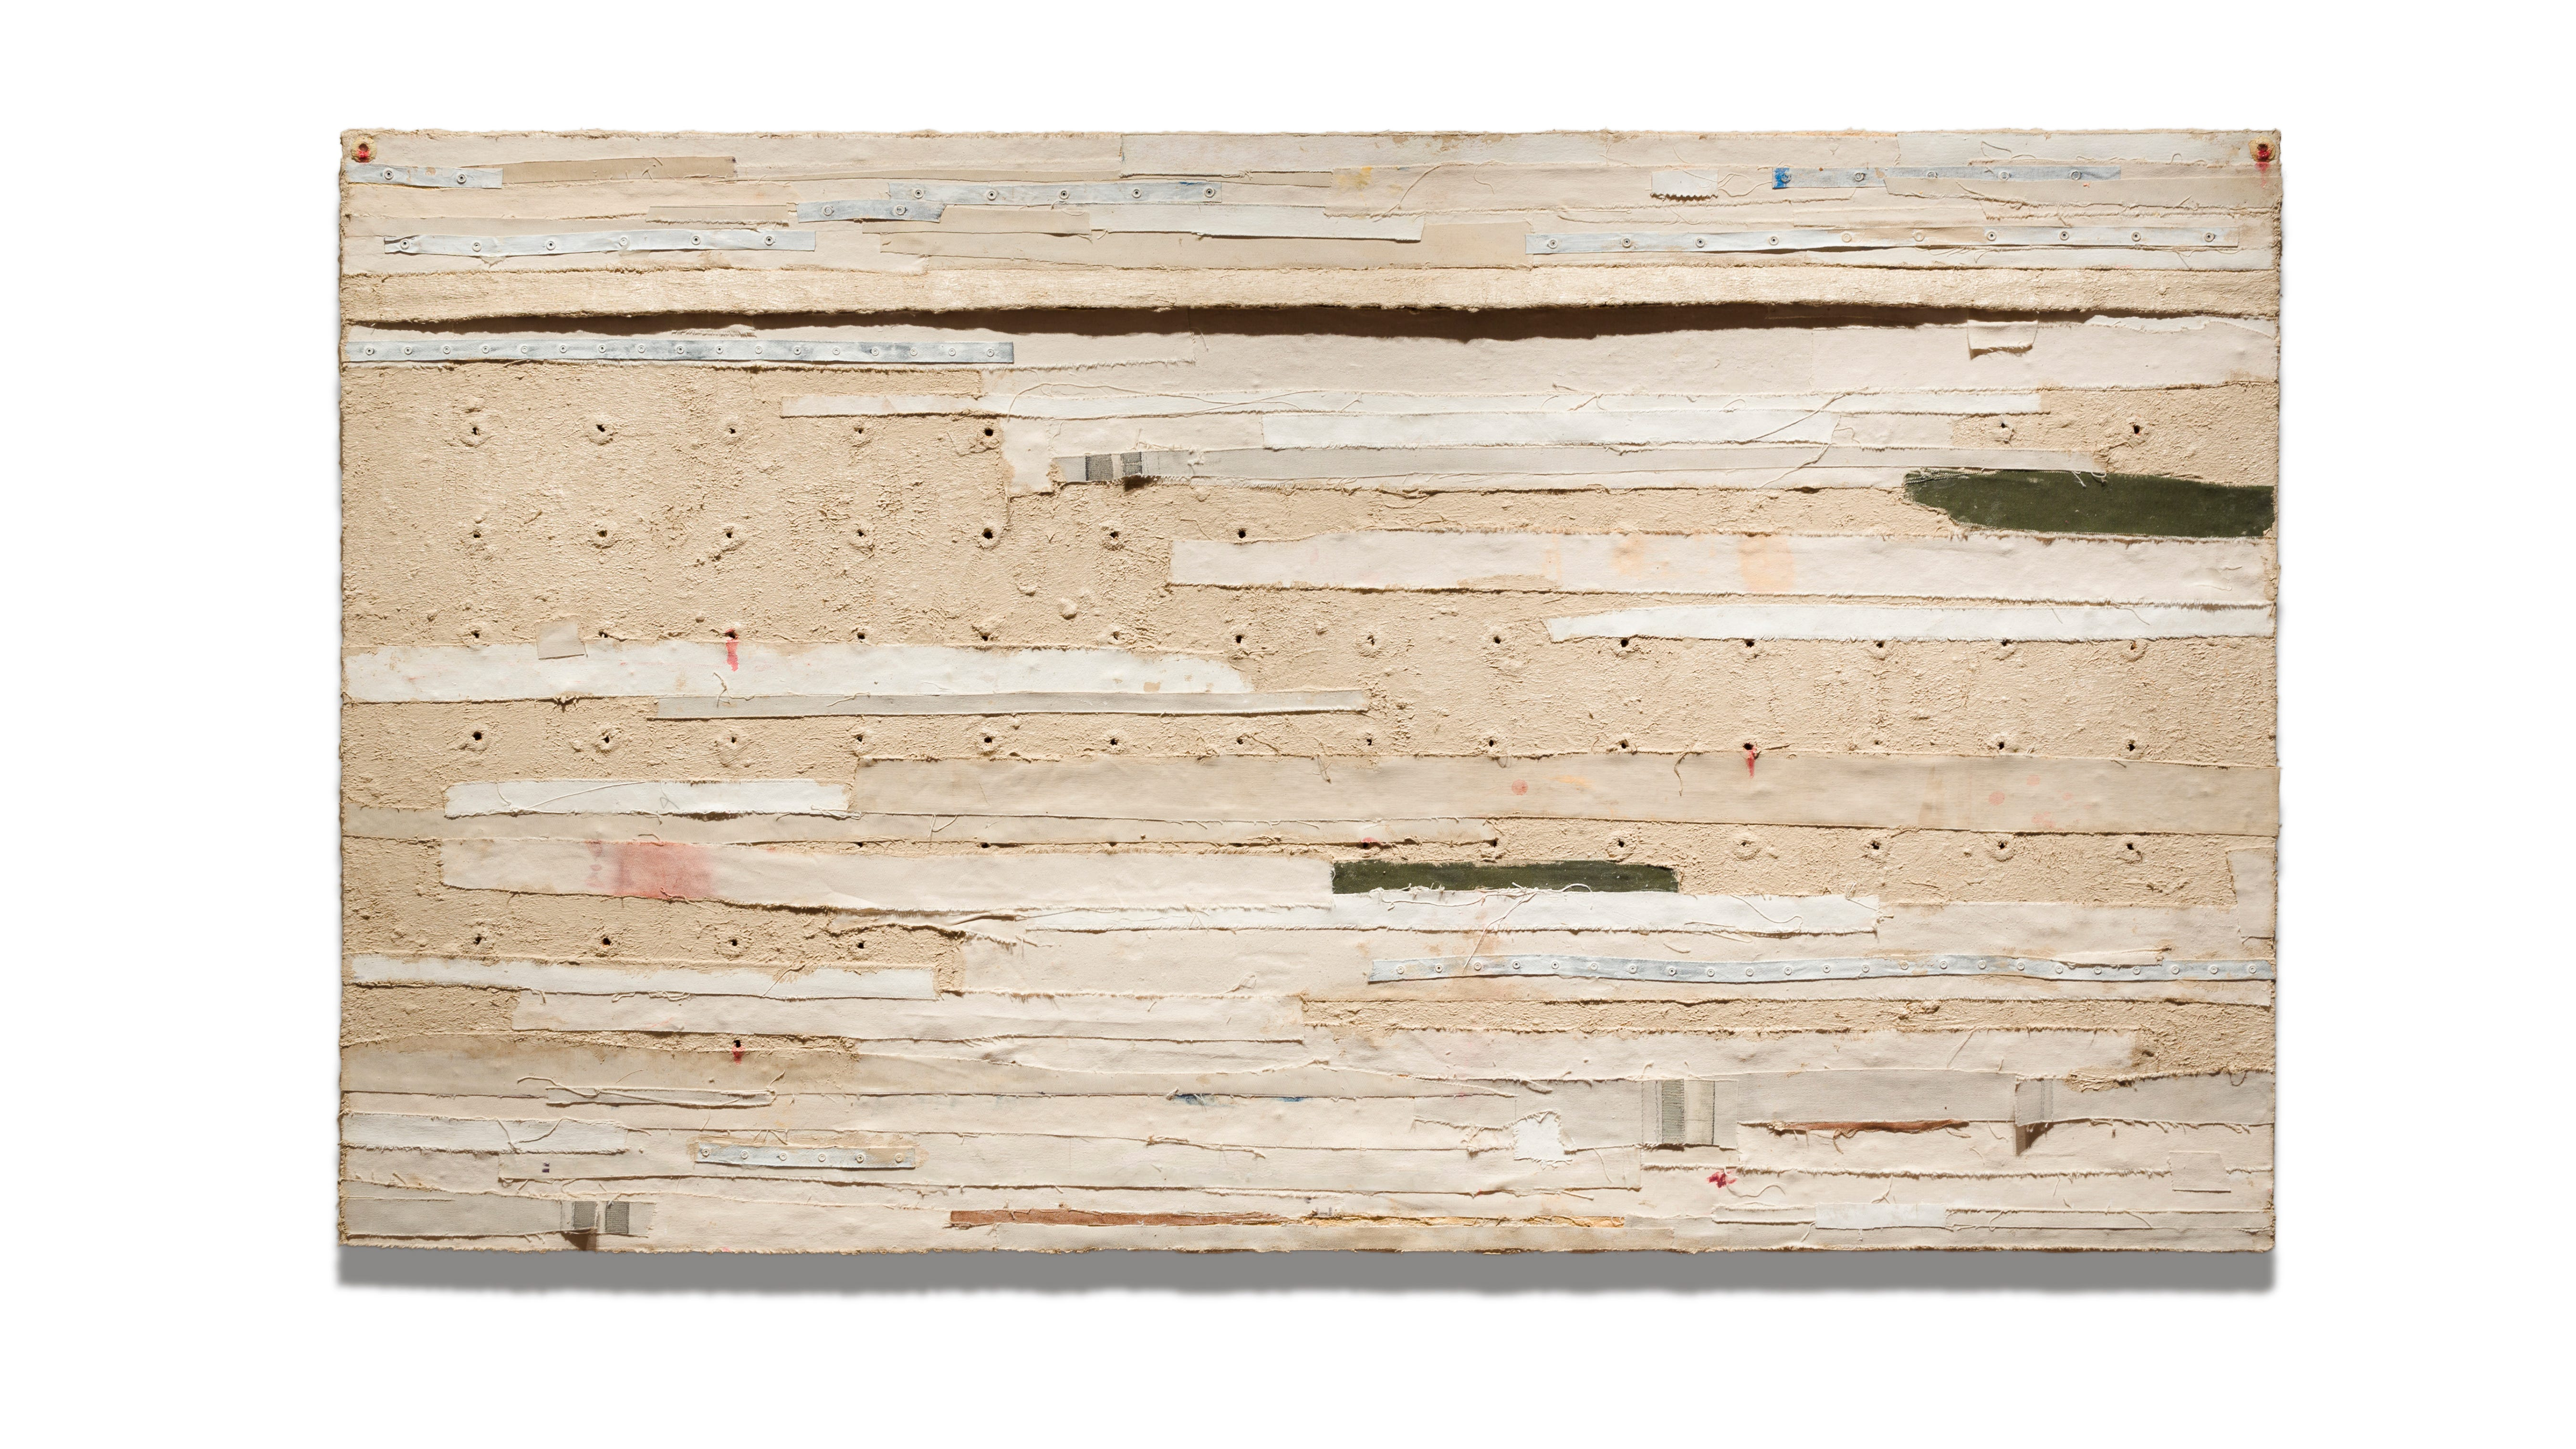 """Harmony Hammond's """"Bandaged Grid"""" is featured in an exhibition at Sarasota Art Museum of Ringling College."""